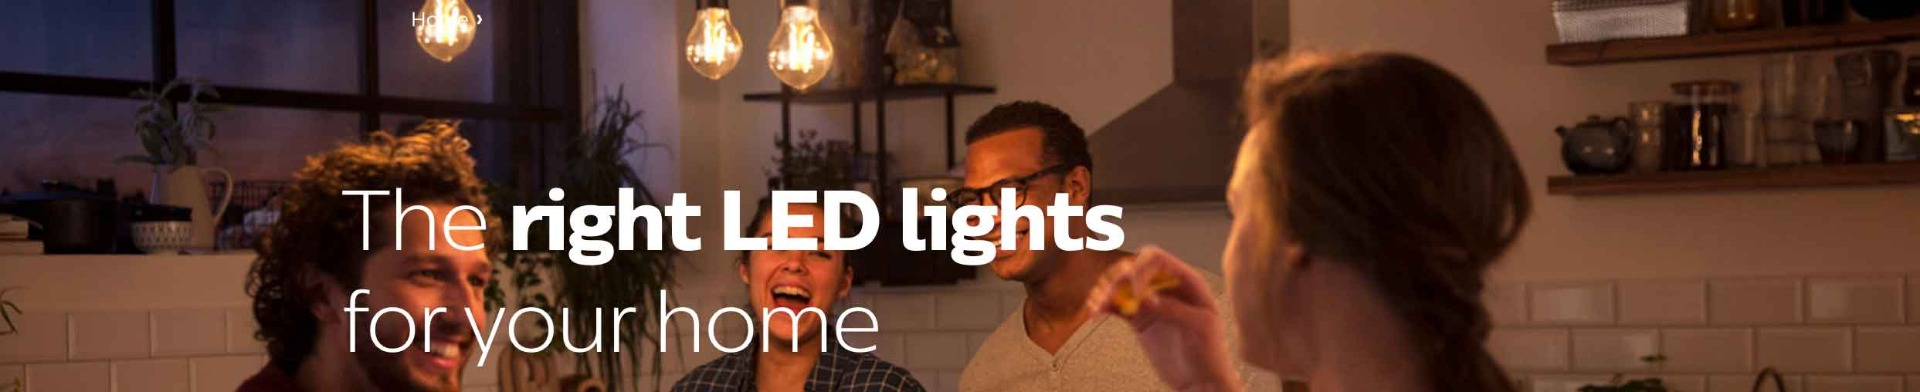 Philips LED Lighting for the home.